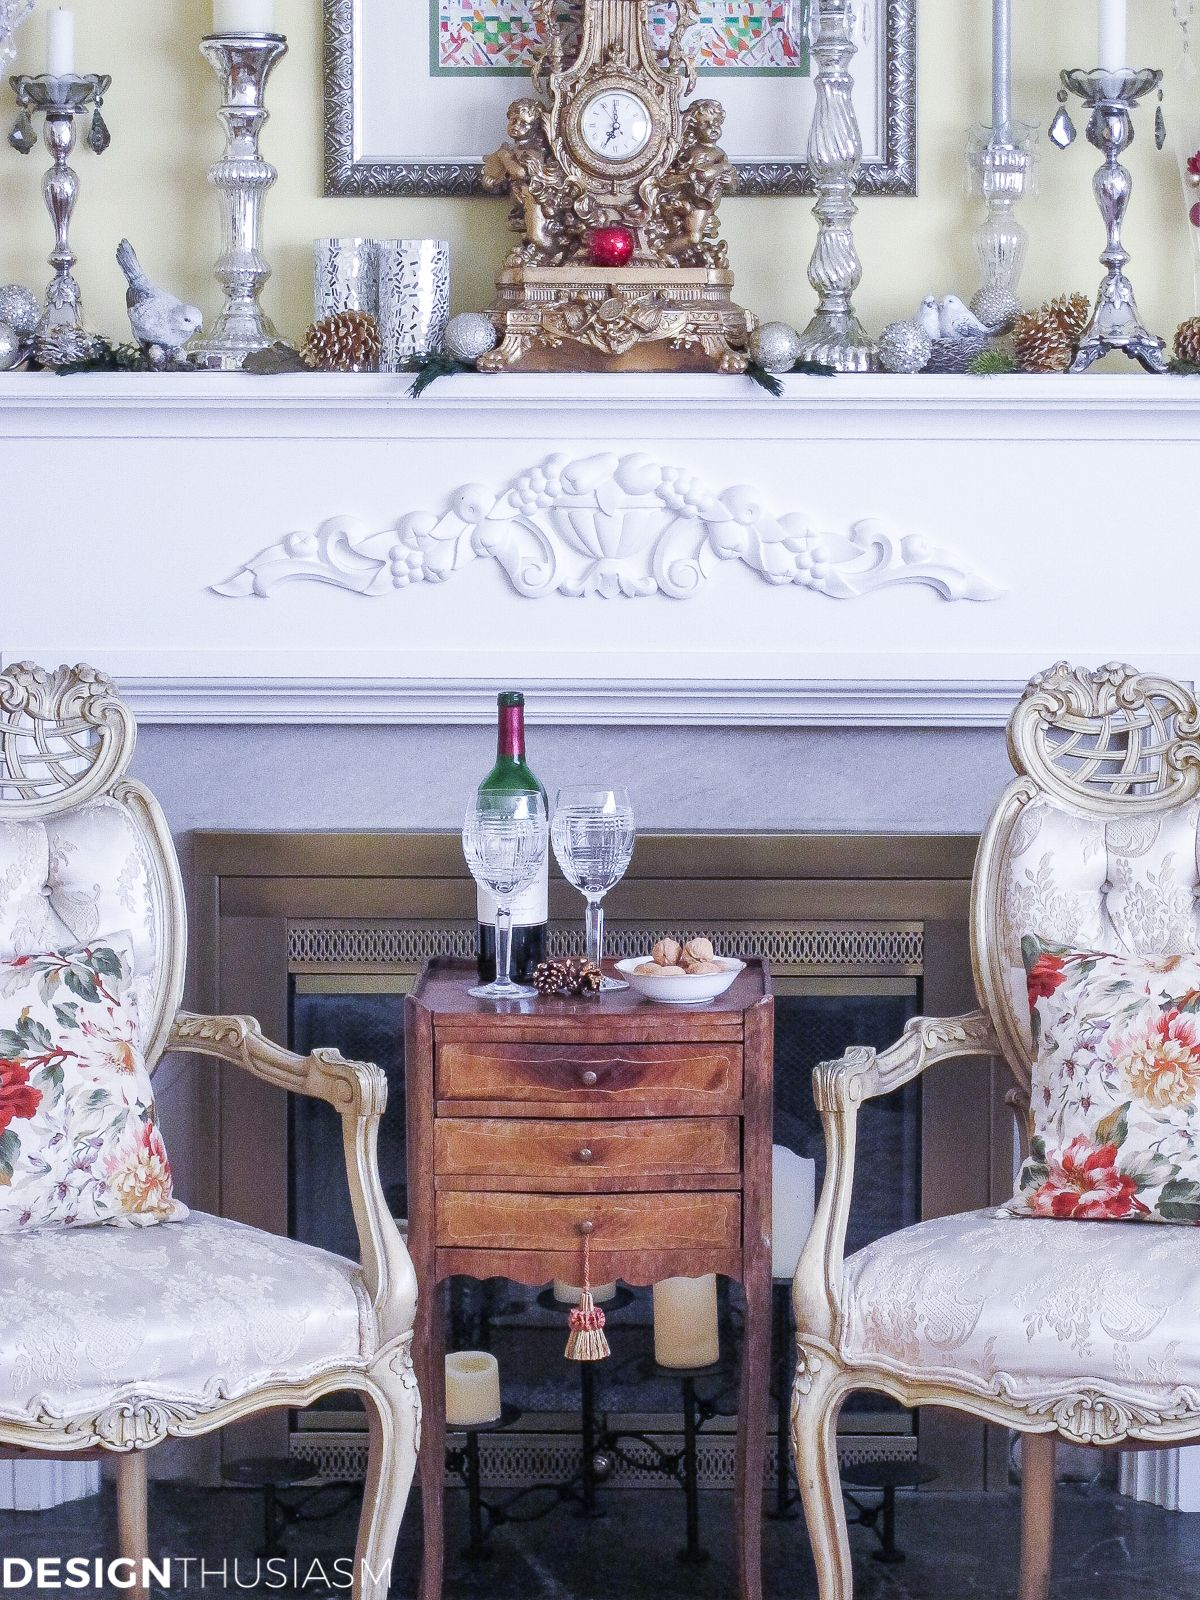 Holiday mantel i love mixing gold and silver for an elegant christmas mantel if you enjoy a bit of glamour check out this chic holiday decor